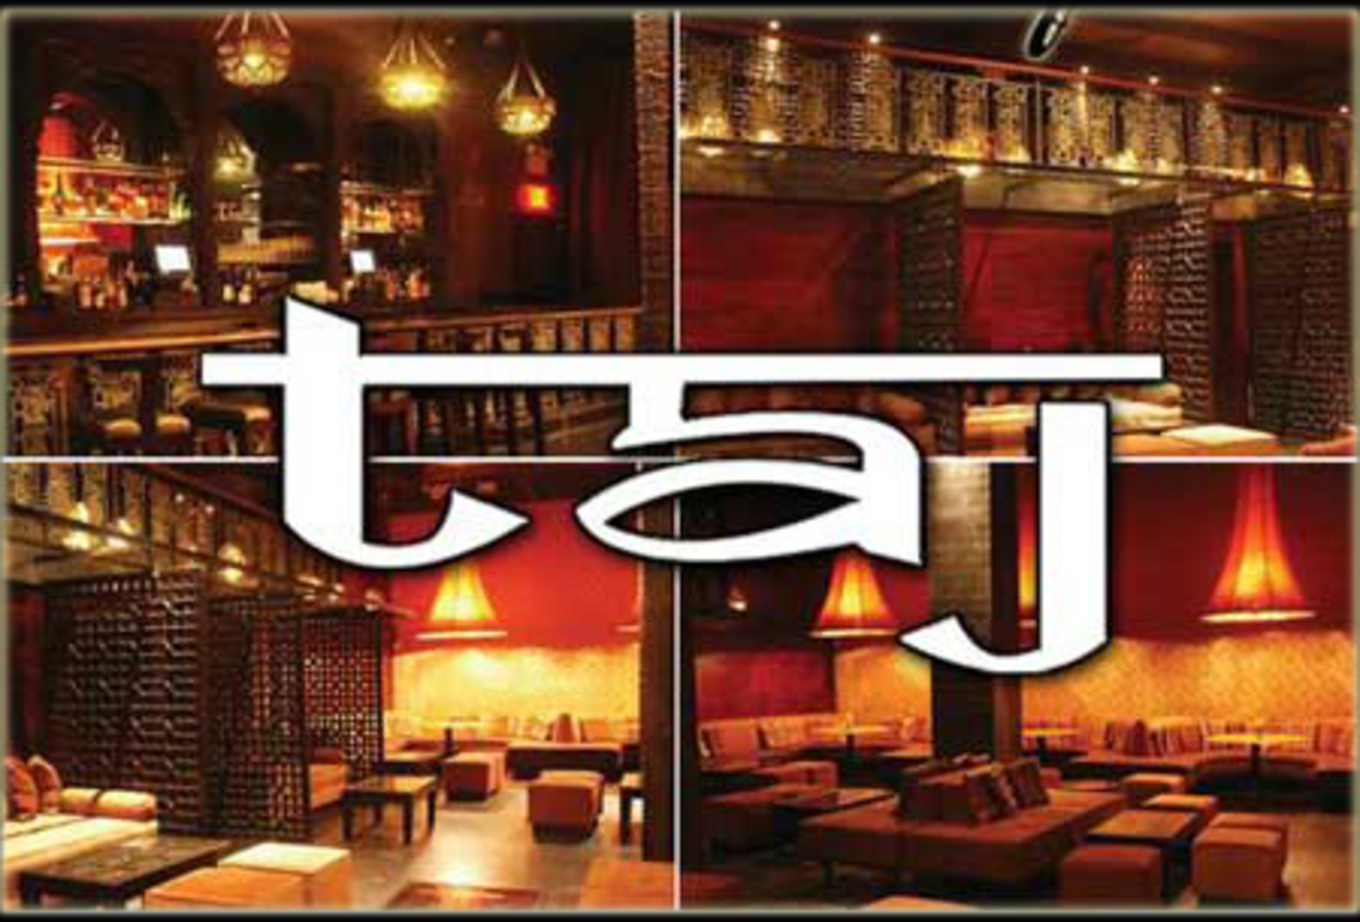 taj fridays - slick parties